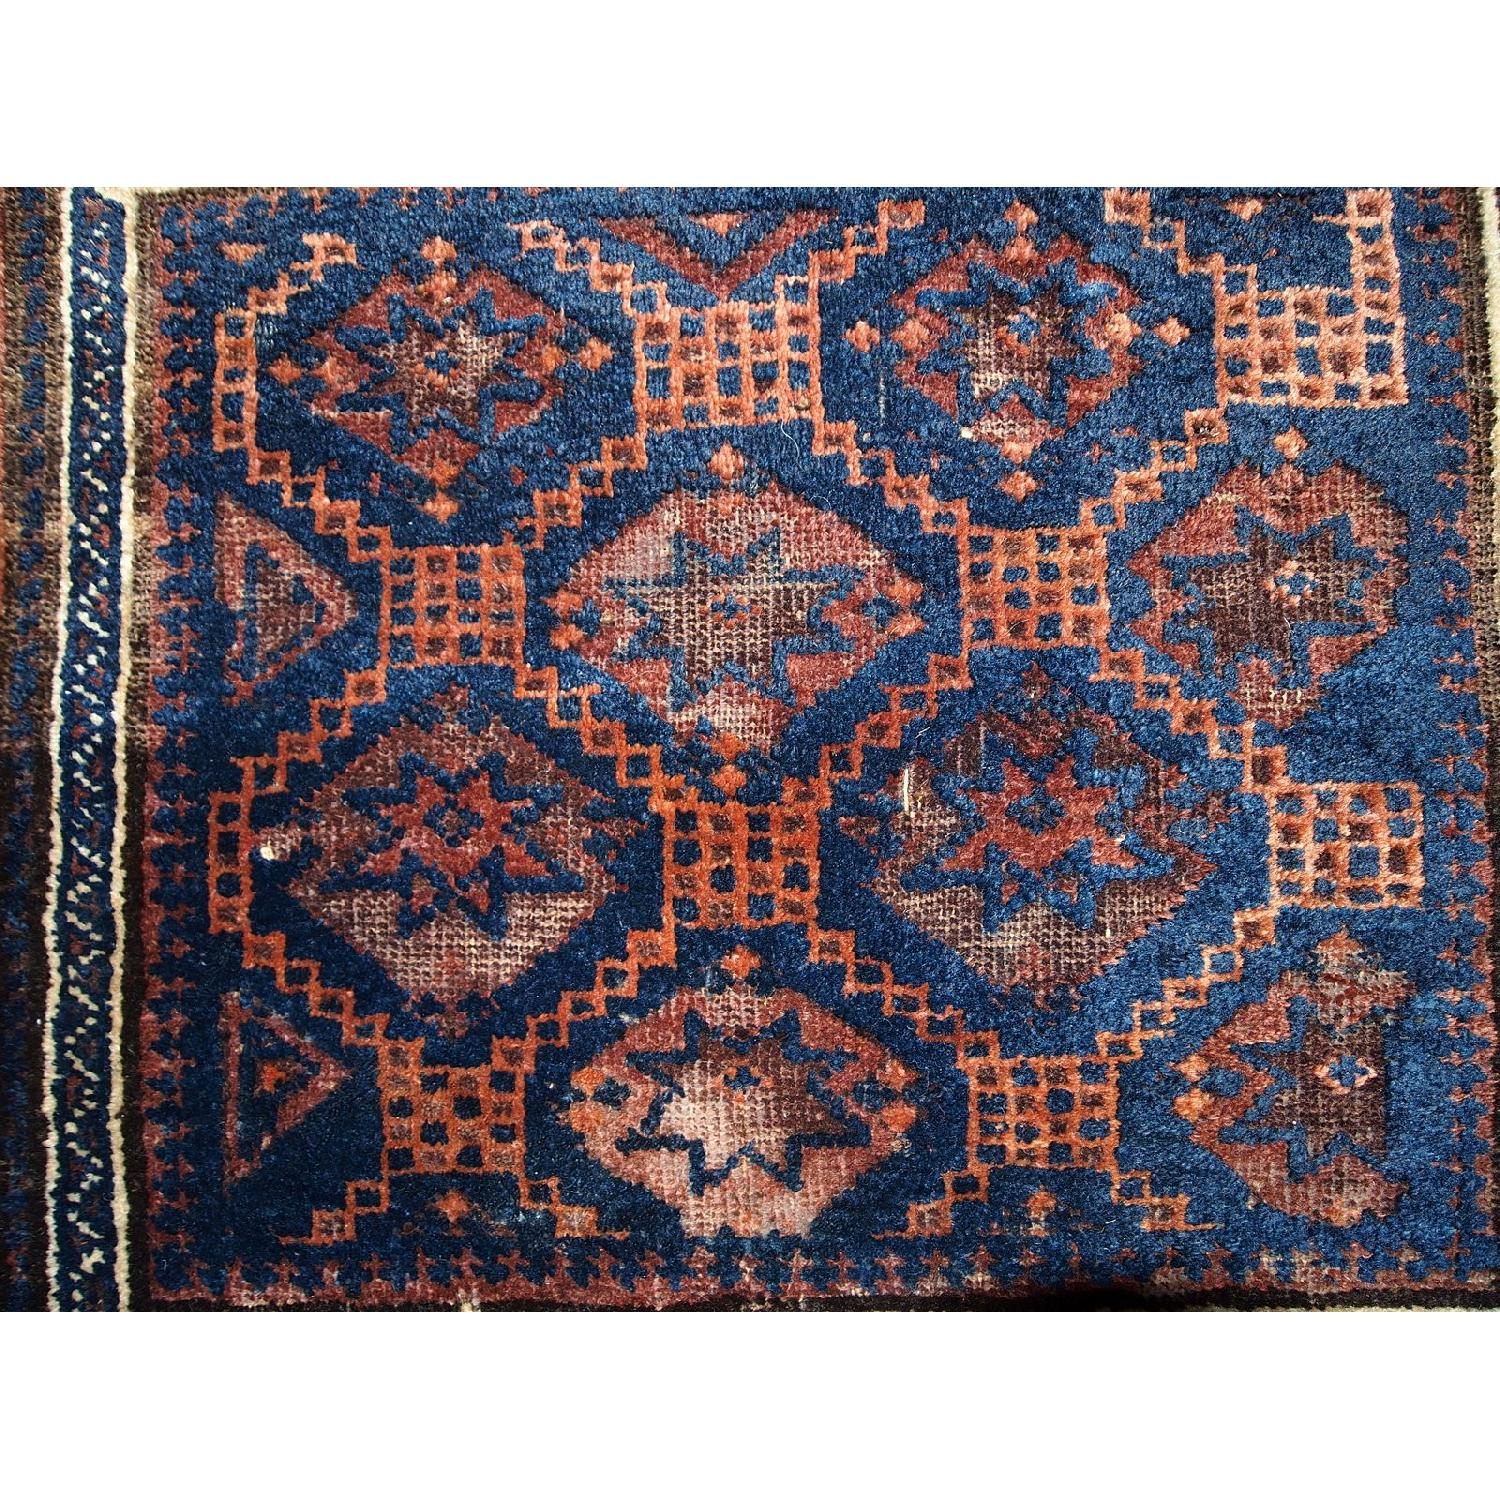 Antique Handmade Collectible Afghan Baluch Bag Face Rug-1